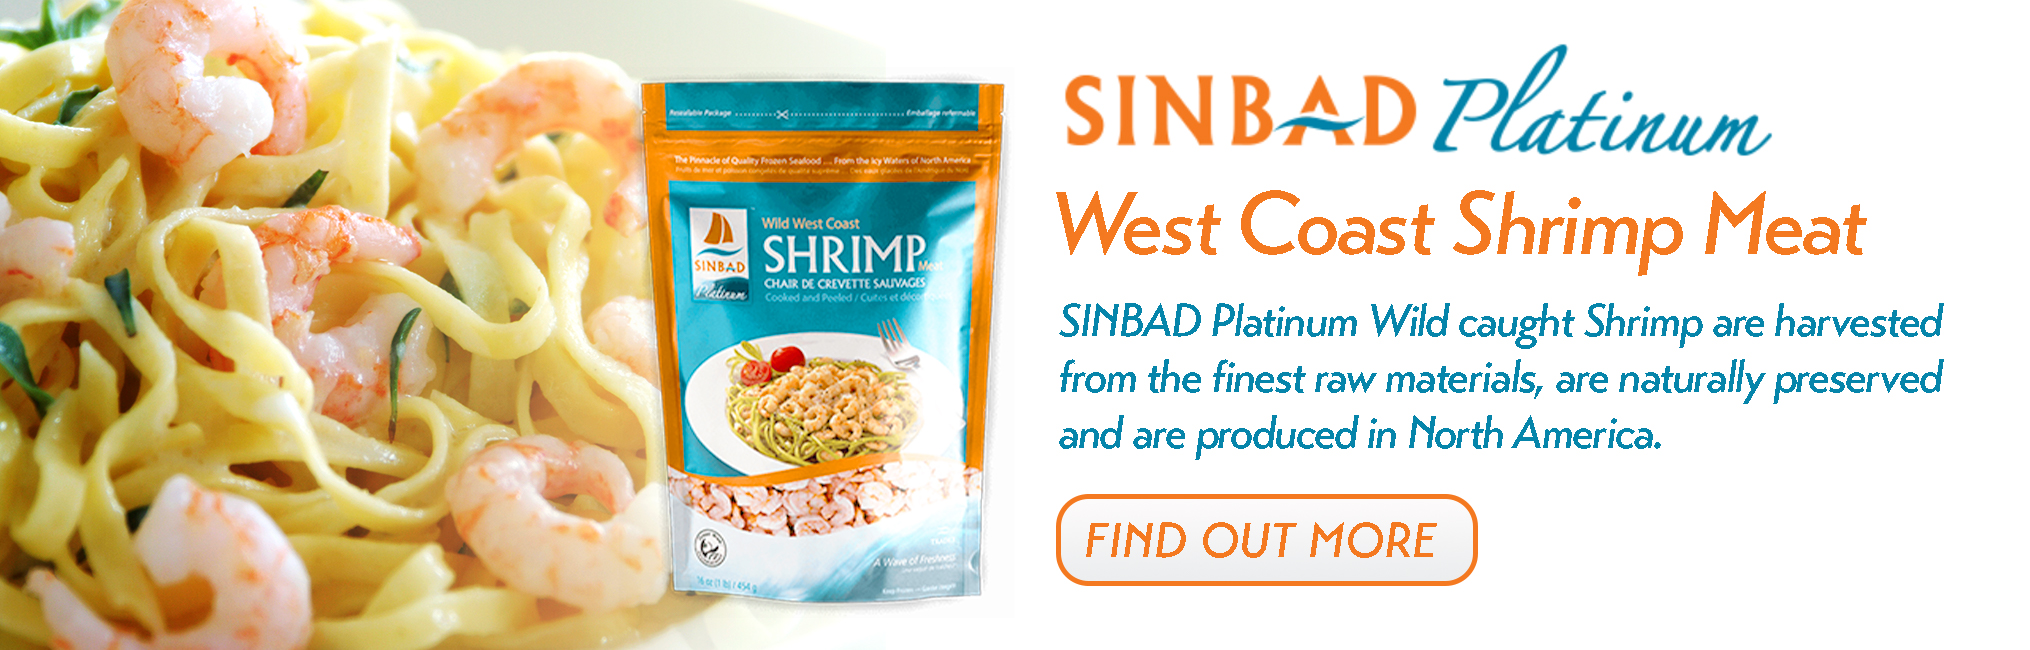 SINBAD Platinum Shrimp Meat